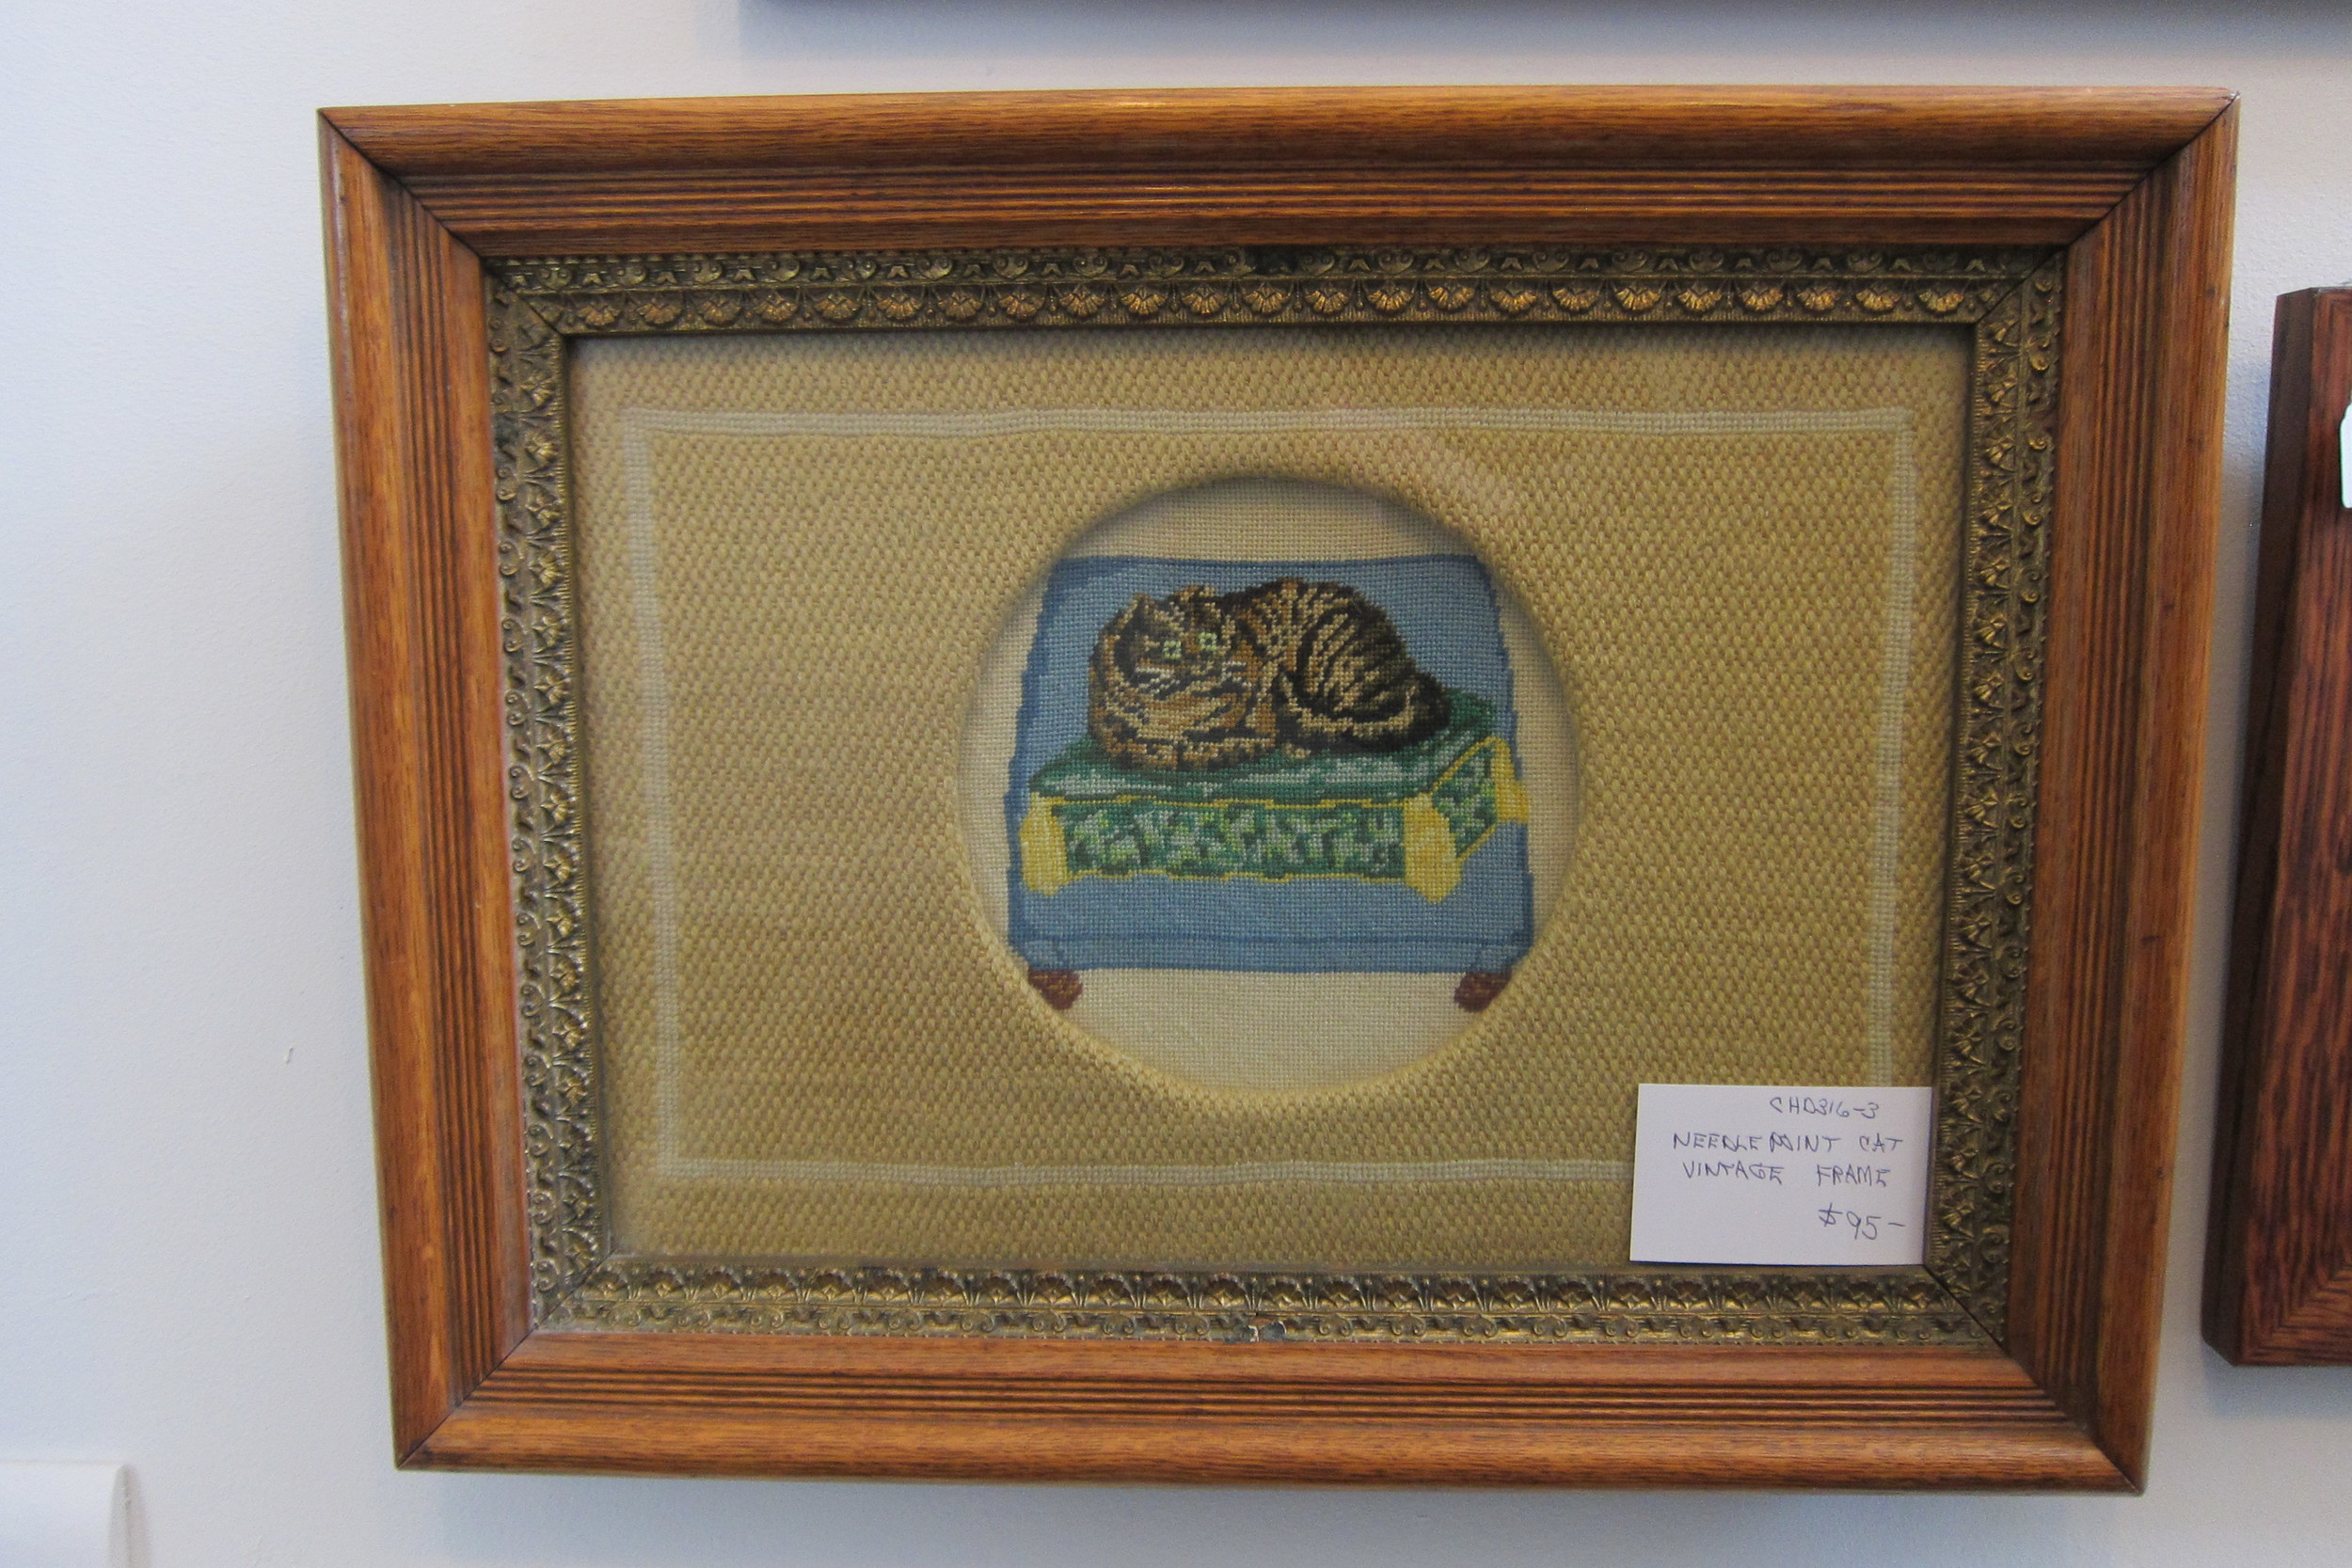 Picture #1: Needlepoint tabby cat, reclining on a cushion, in a vintage frame. Price: $95.